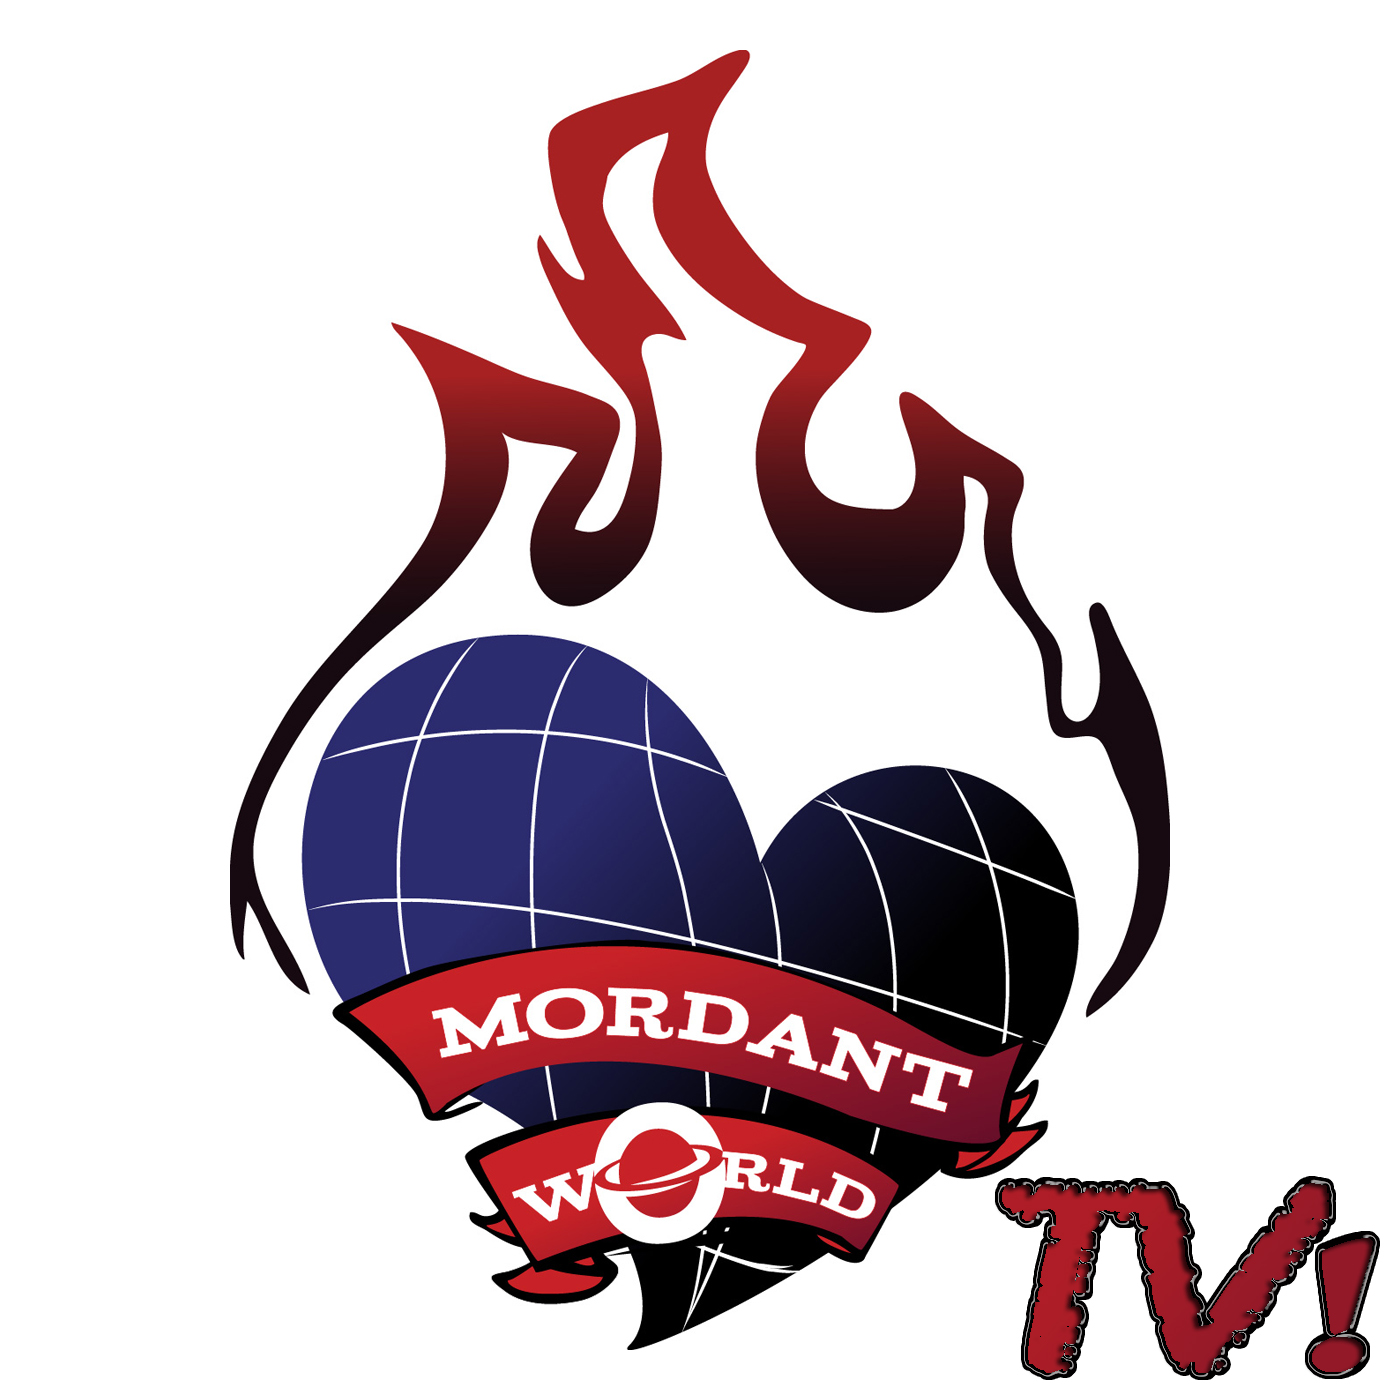 Mordantworldtv's Channel